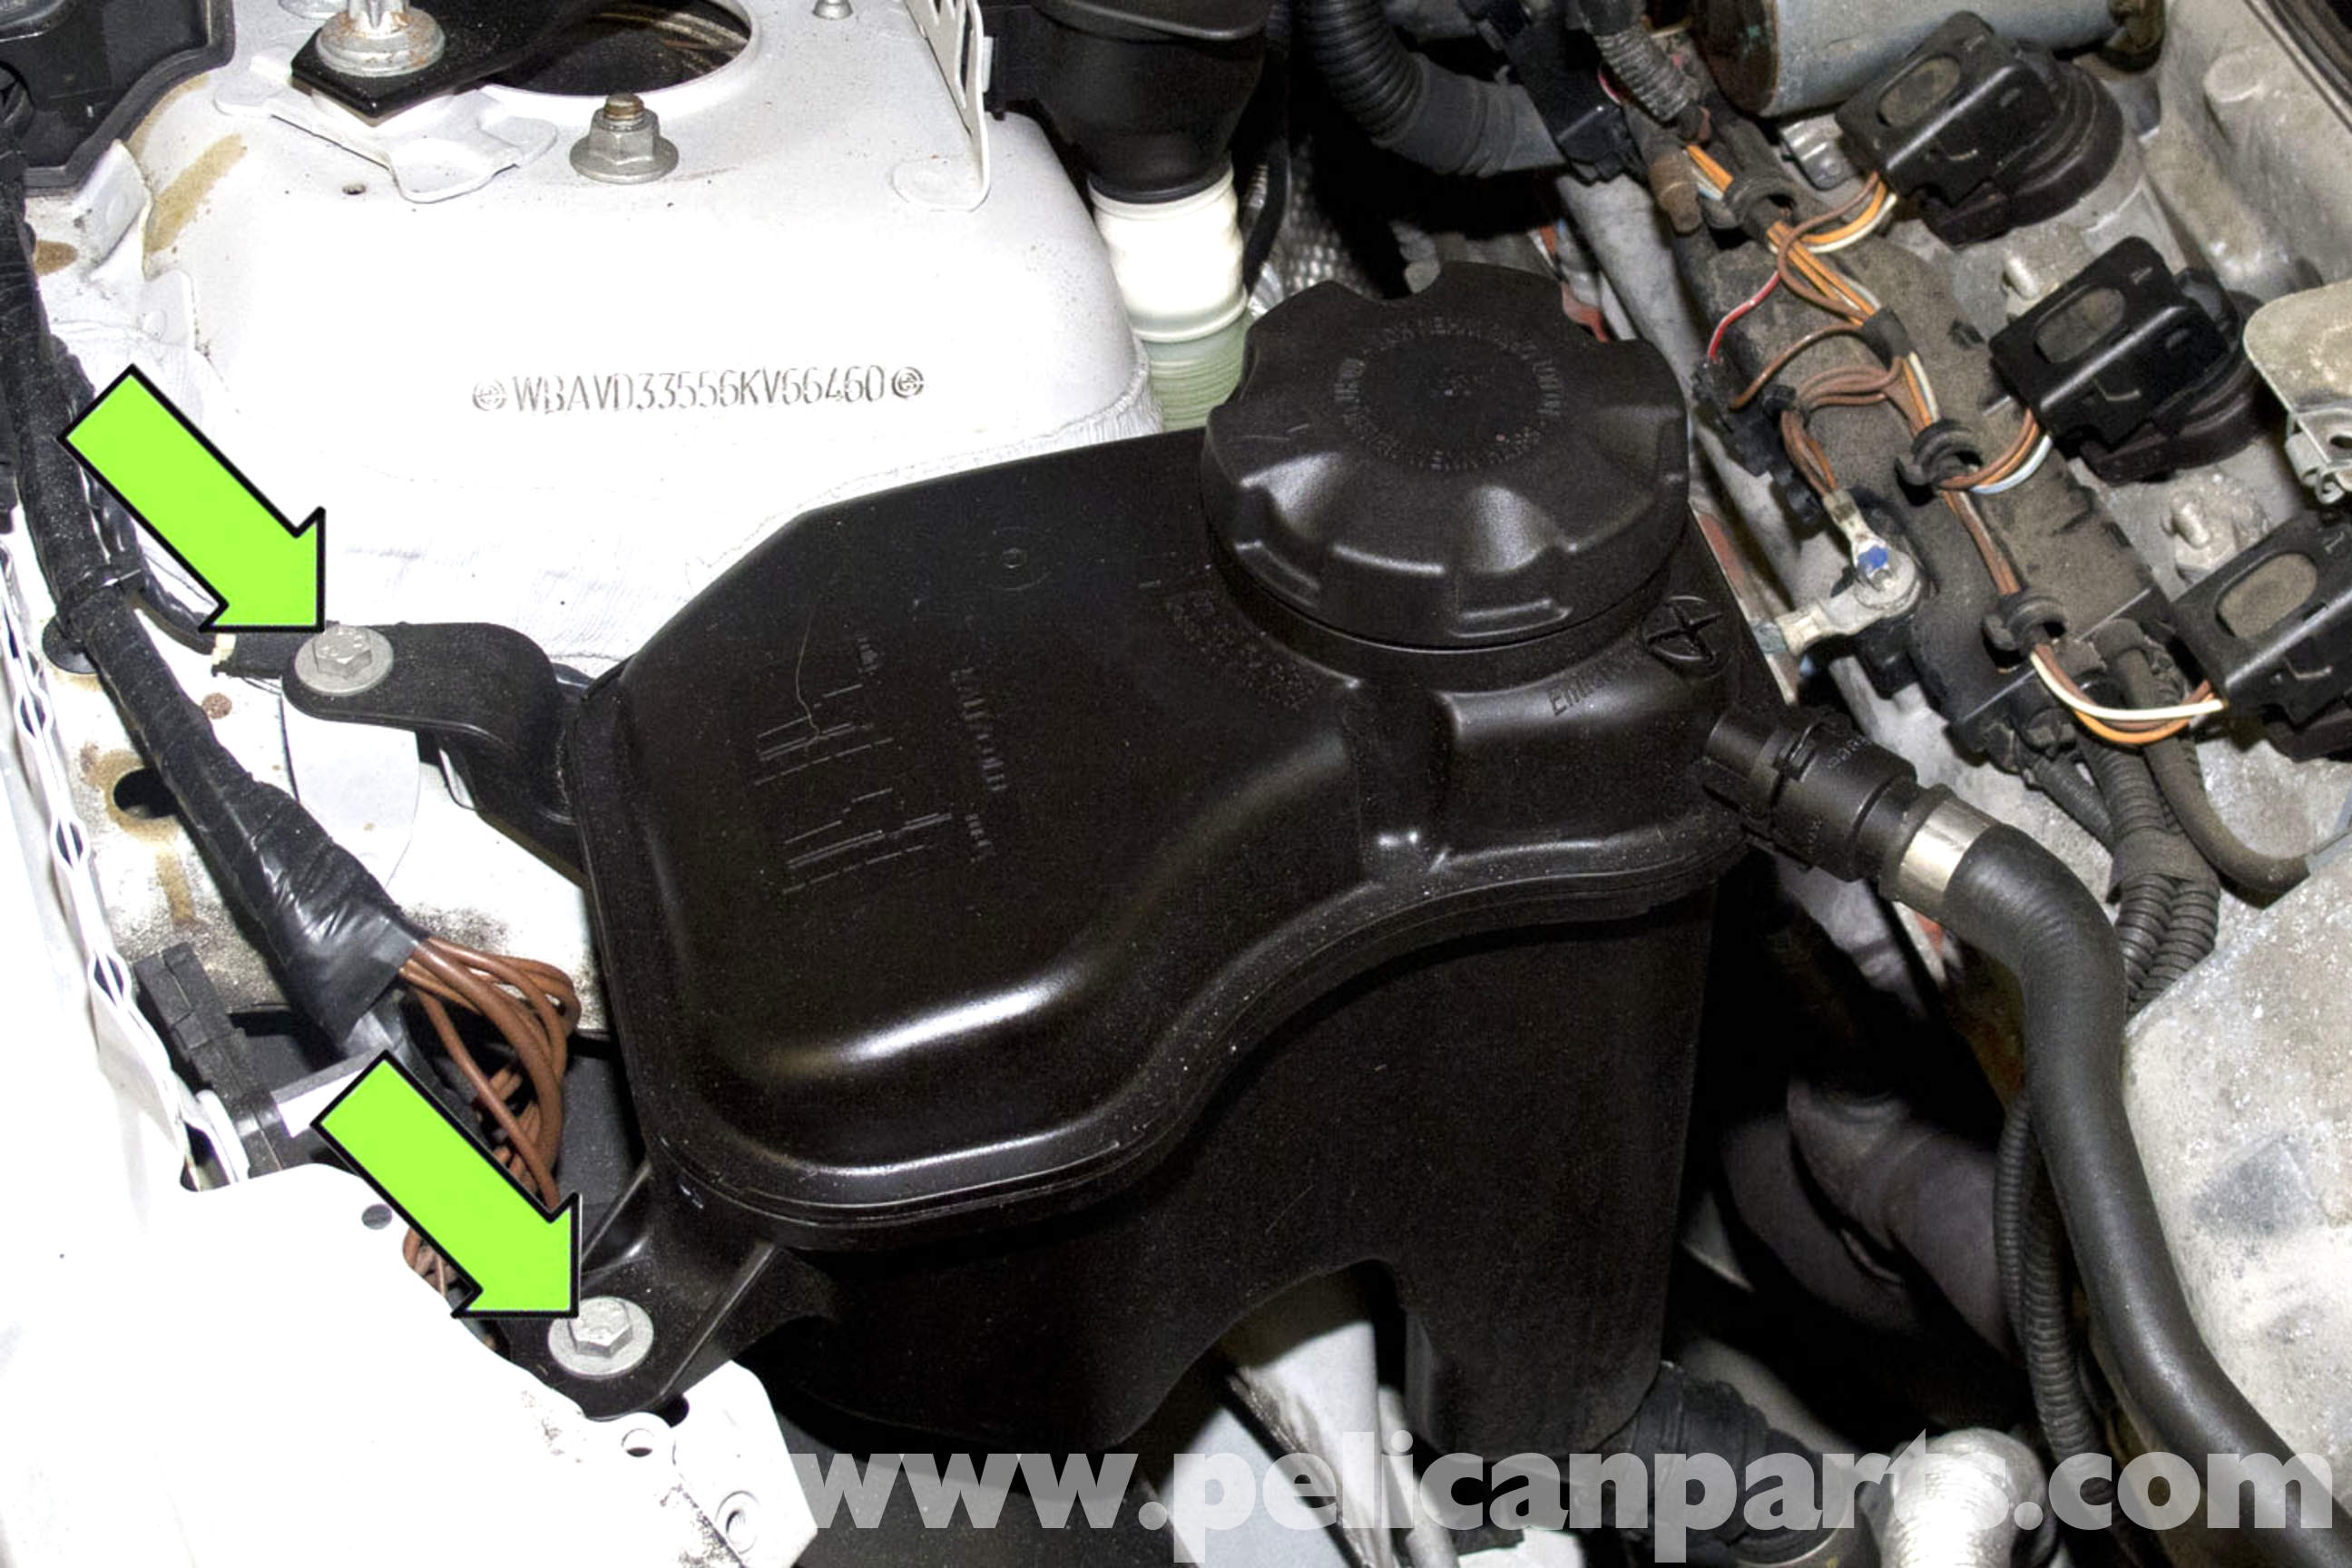 Bmw e90 engine oil leaks pics bmw free engine image for for Bmw 335i motor oil